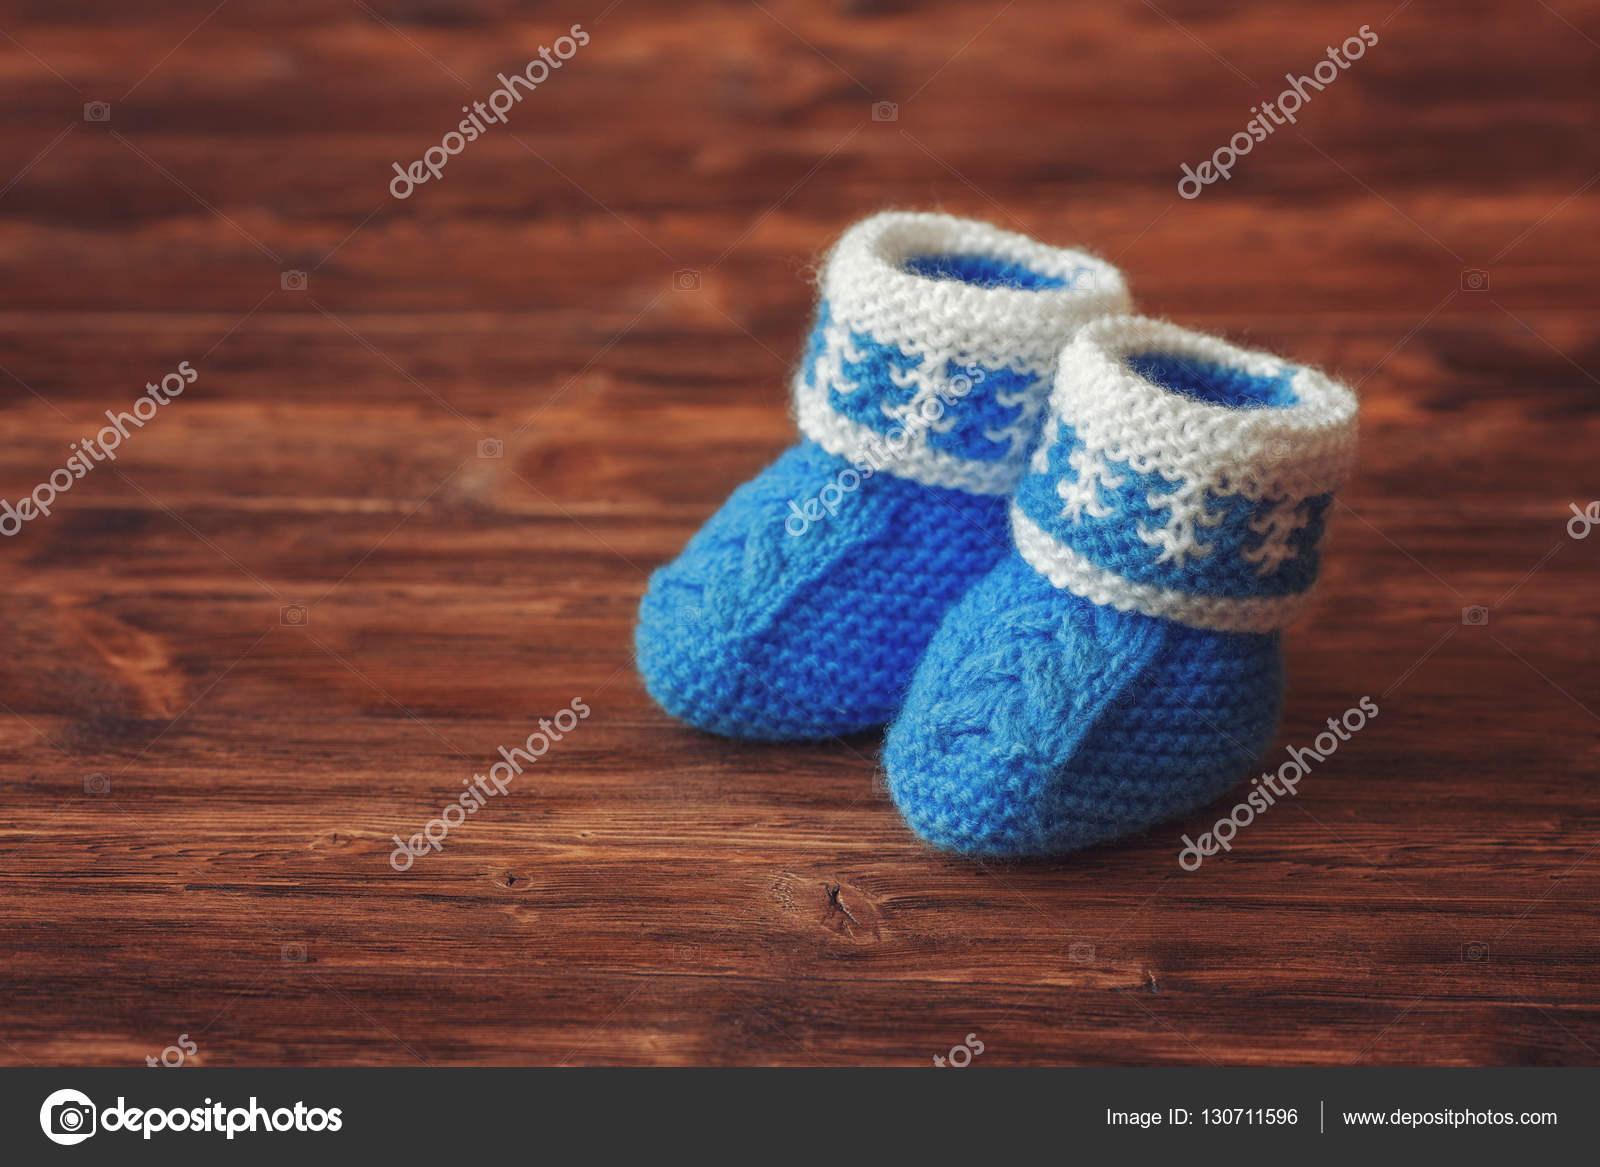 046306c68bff2 Blue crochet baby booties on wooden background, copyspace, vintage ...